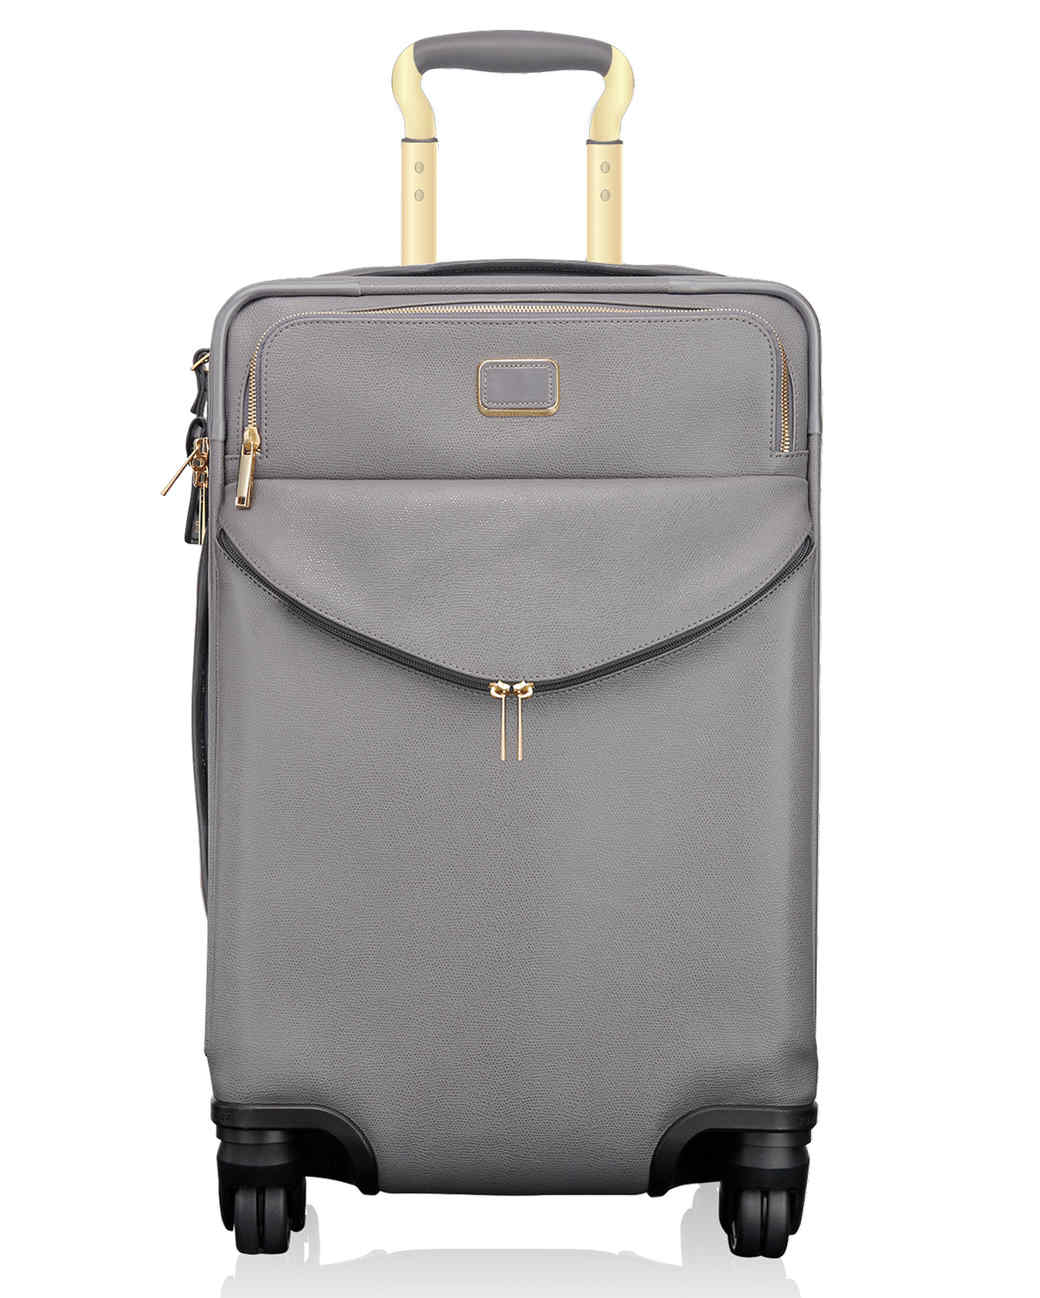 rolling-suitcase-79360-gull-grey-sinclair-blair-international-carry-on-retouched-finals1112130-s1112130.jpg